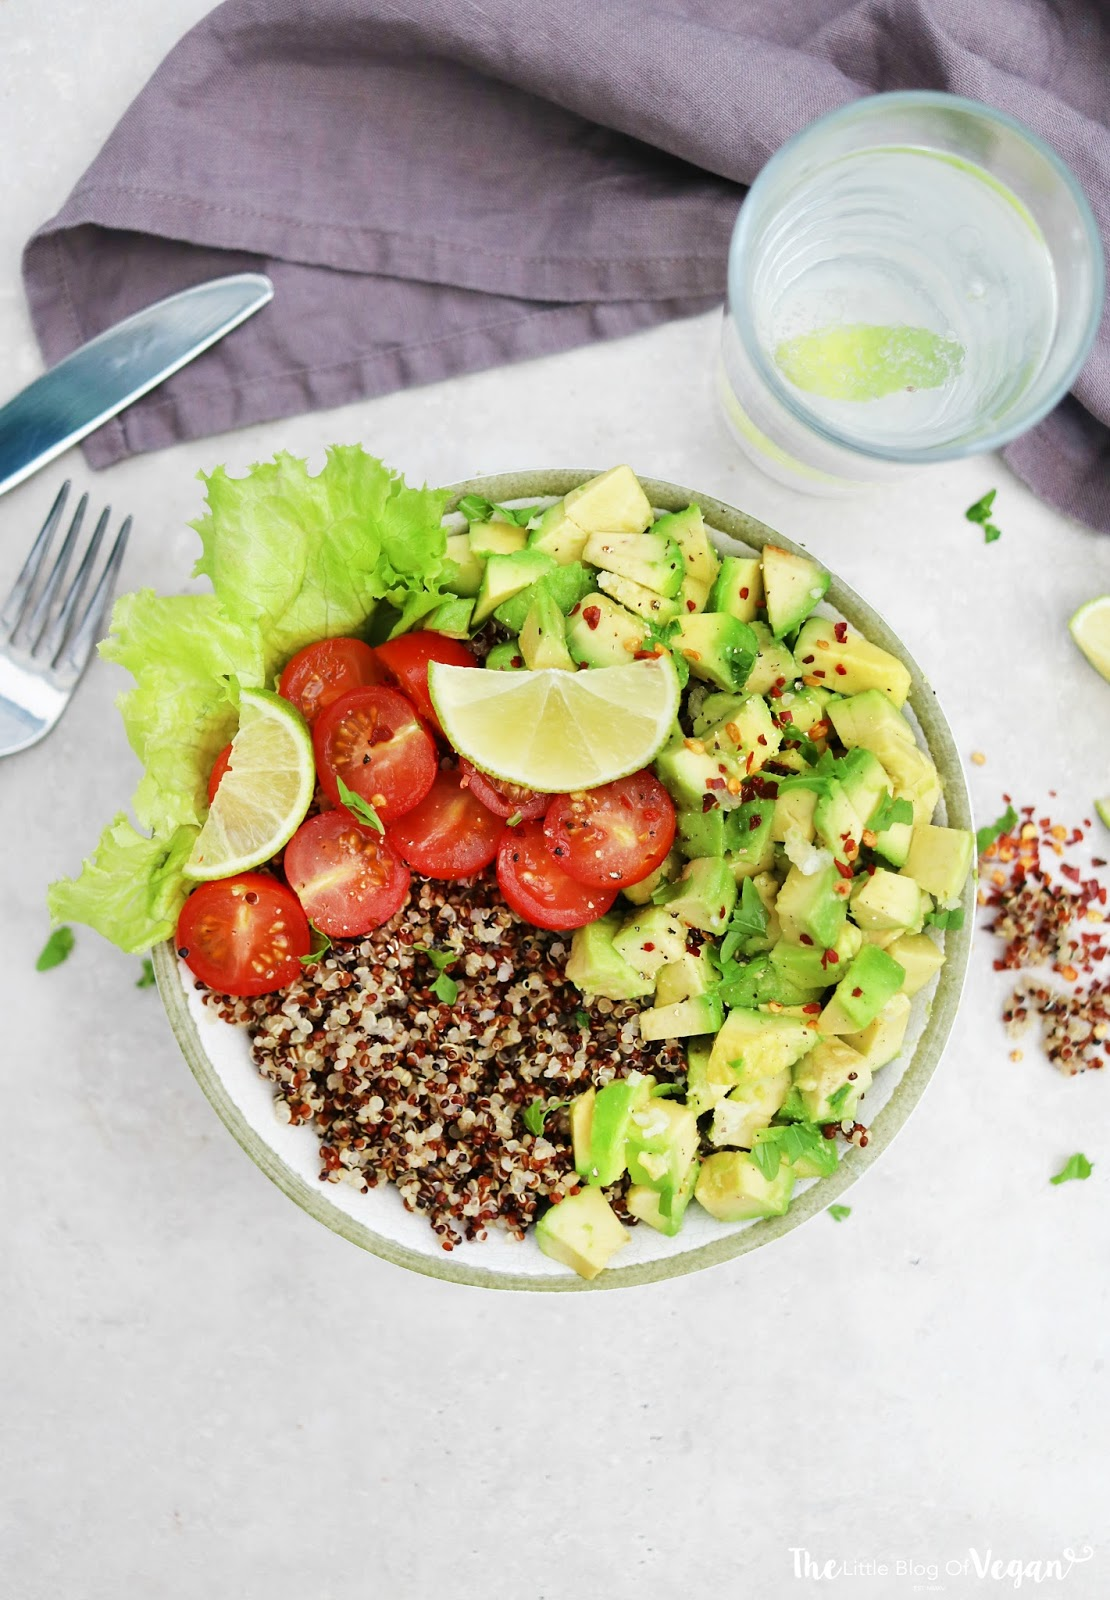 This Salad Is Absolutely Divine, Fresh And Extremely Tasty! It's Packed  Full Of Flavour It's Nice To Have The Different Textures, Soft Avocado,